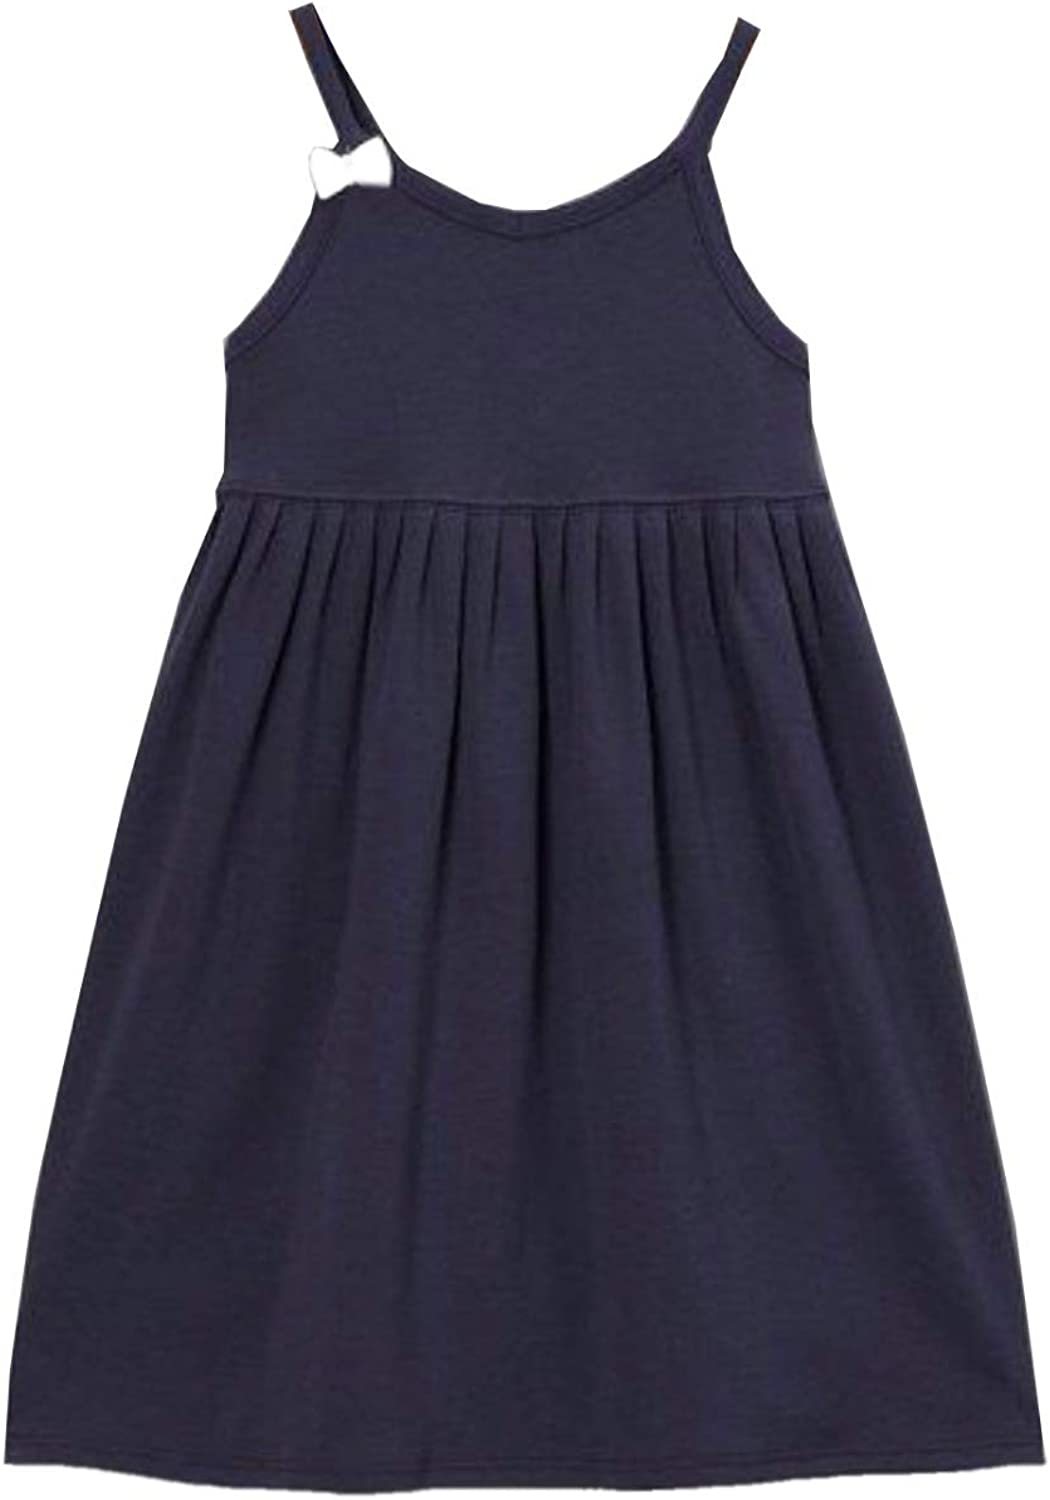 The Season Essentials Kidsy Girls Strappy Dress Solid Colors, Stripes for Toddler Baby Girls 2 3 4 5 6 8 Years